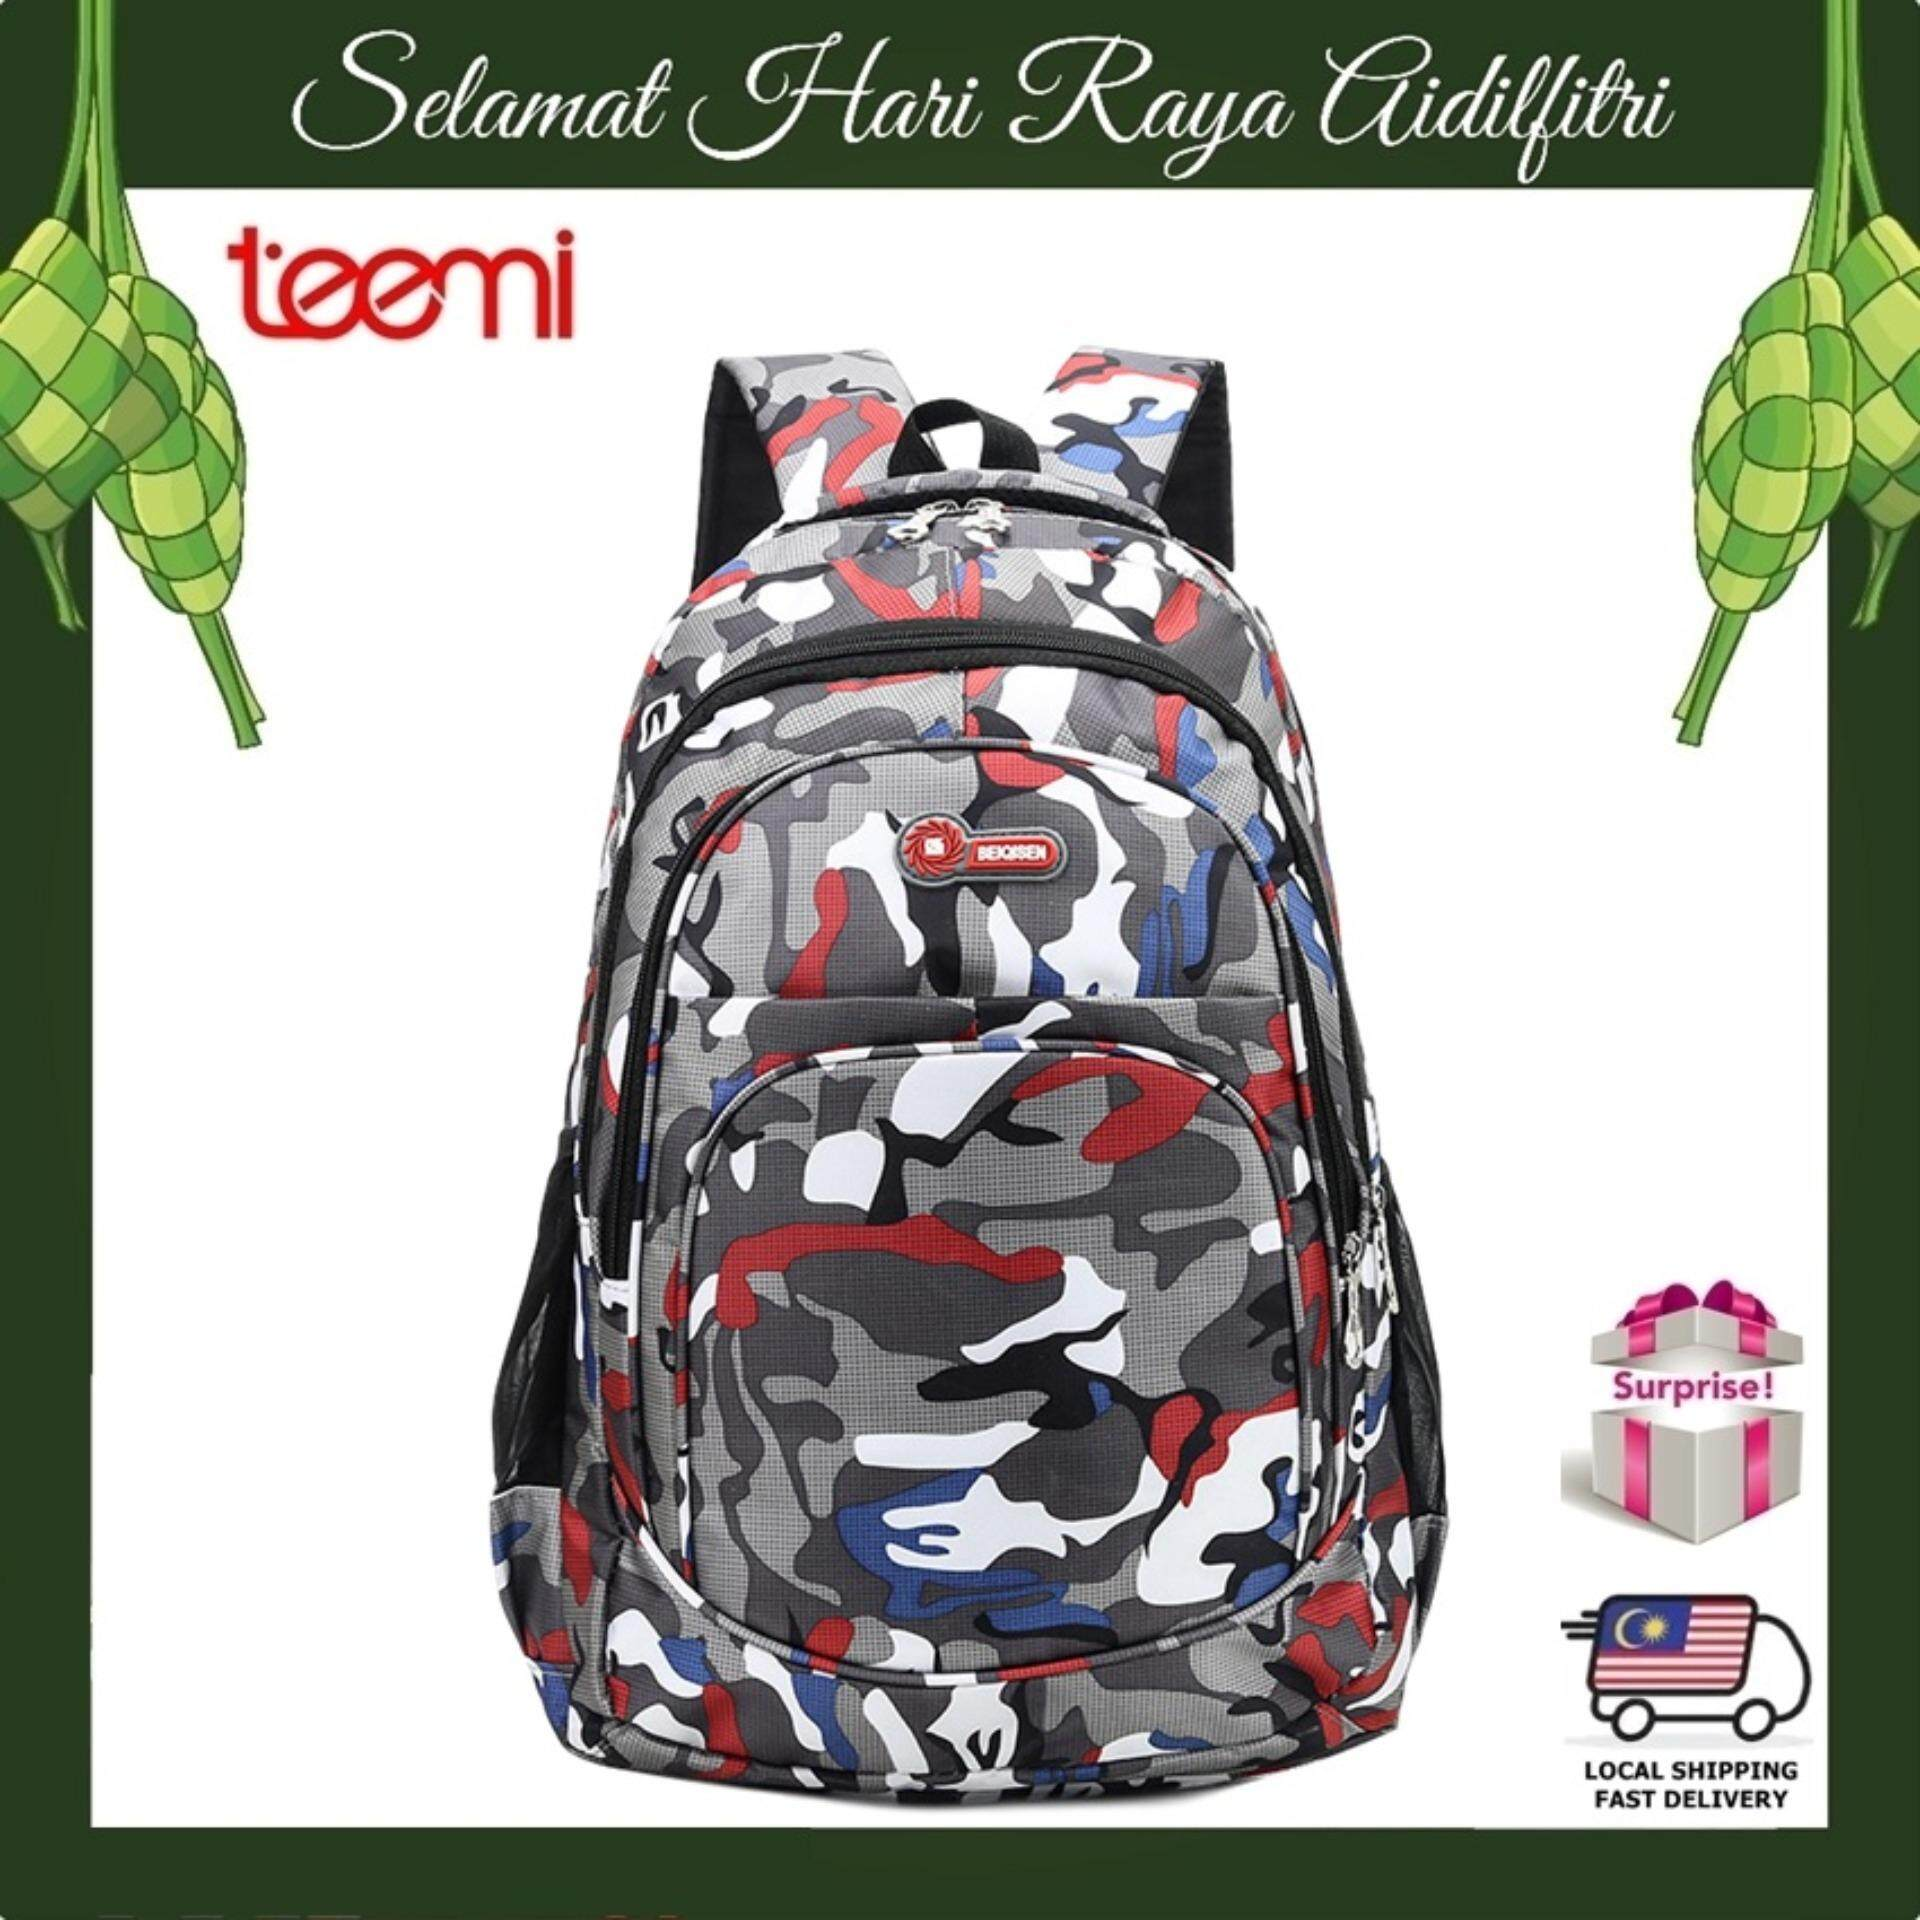 TEEMI Unisex Backpack Modern Army Camouflage Forest Stripe Printing Water Resistant Nylon Sports Laptop Travel Outdoor Leisure Teenager College Bag